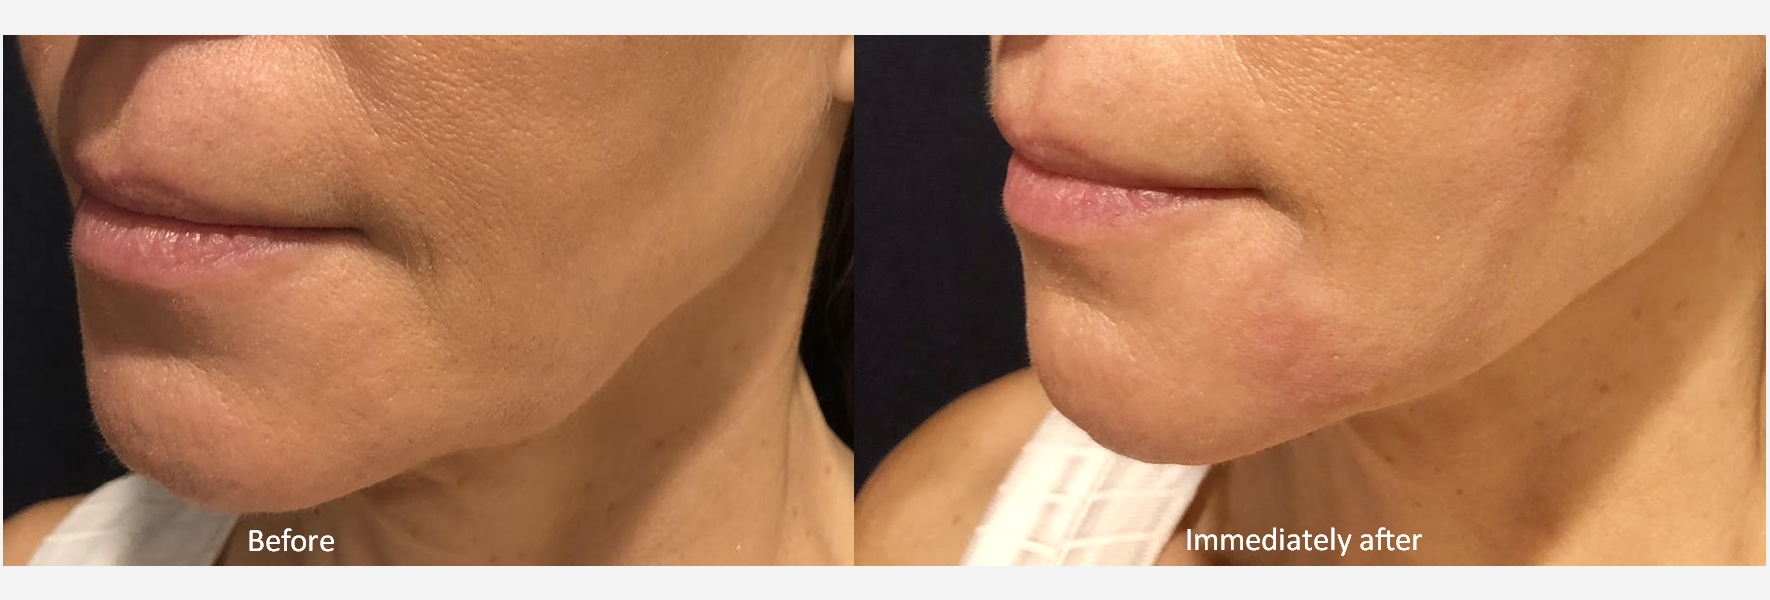 pdo-thread-lift-vitamedspa-before-after